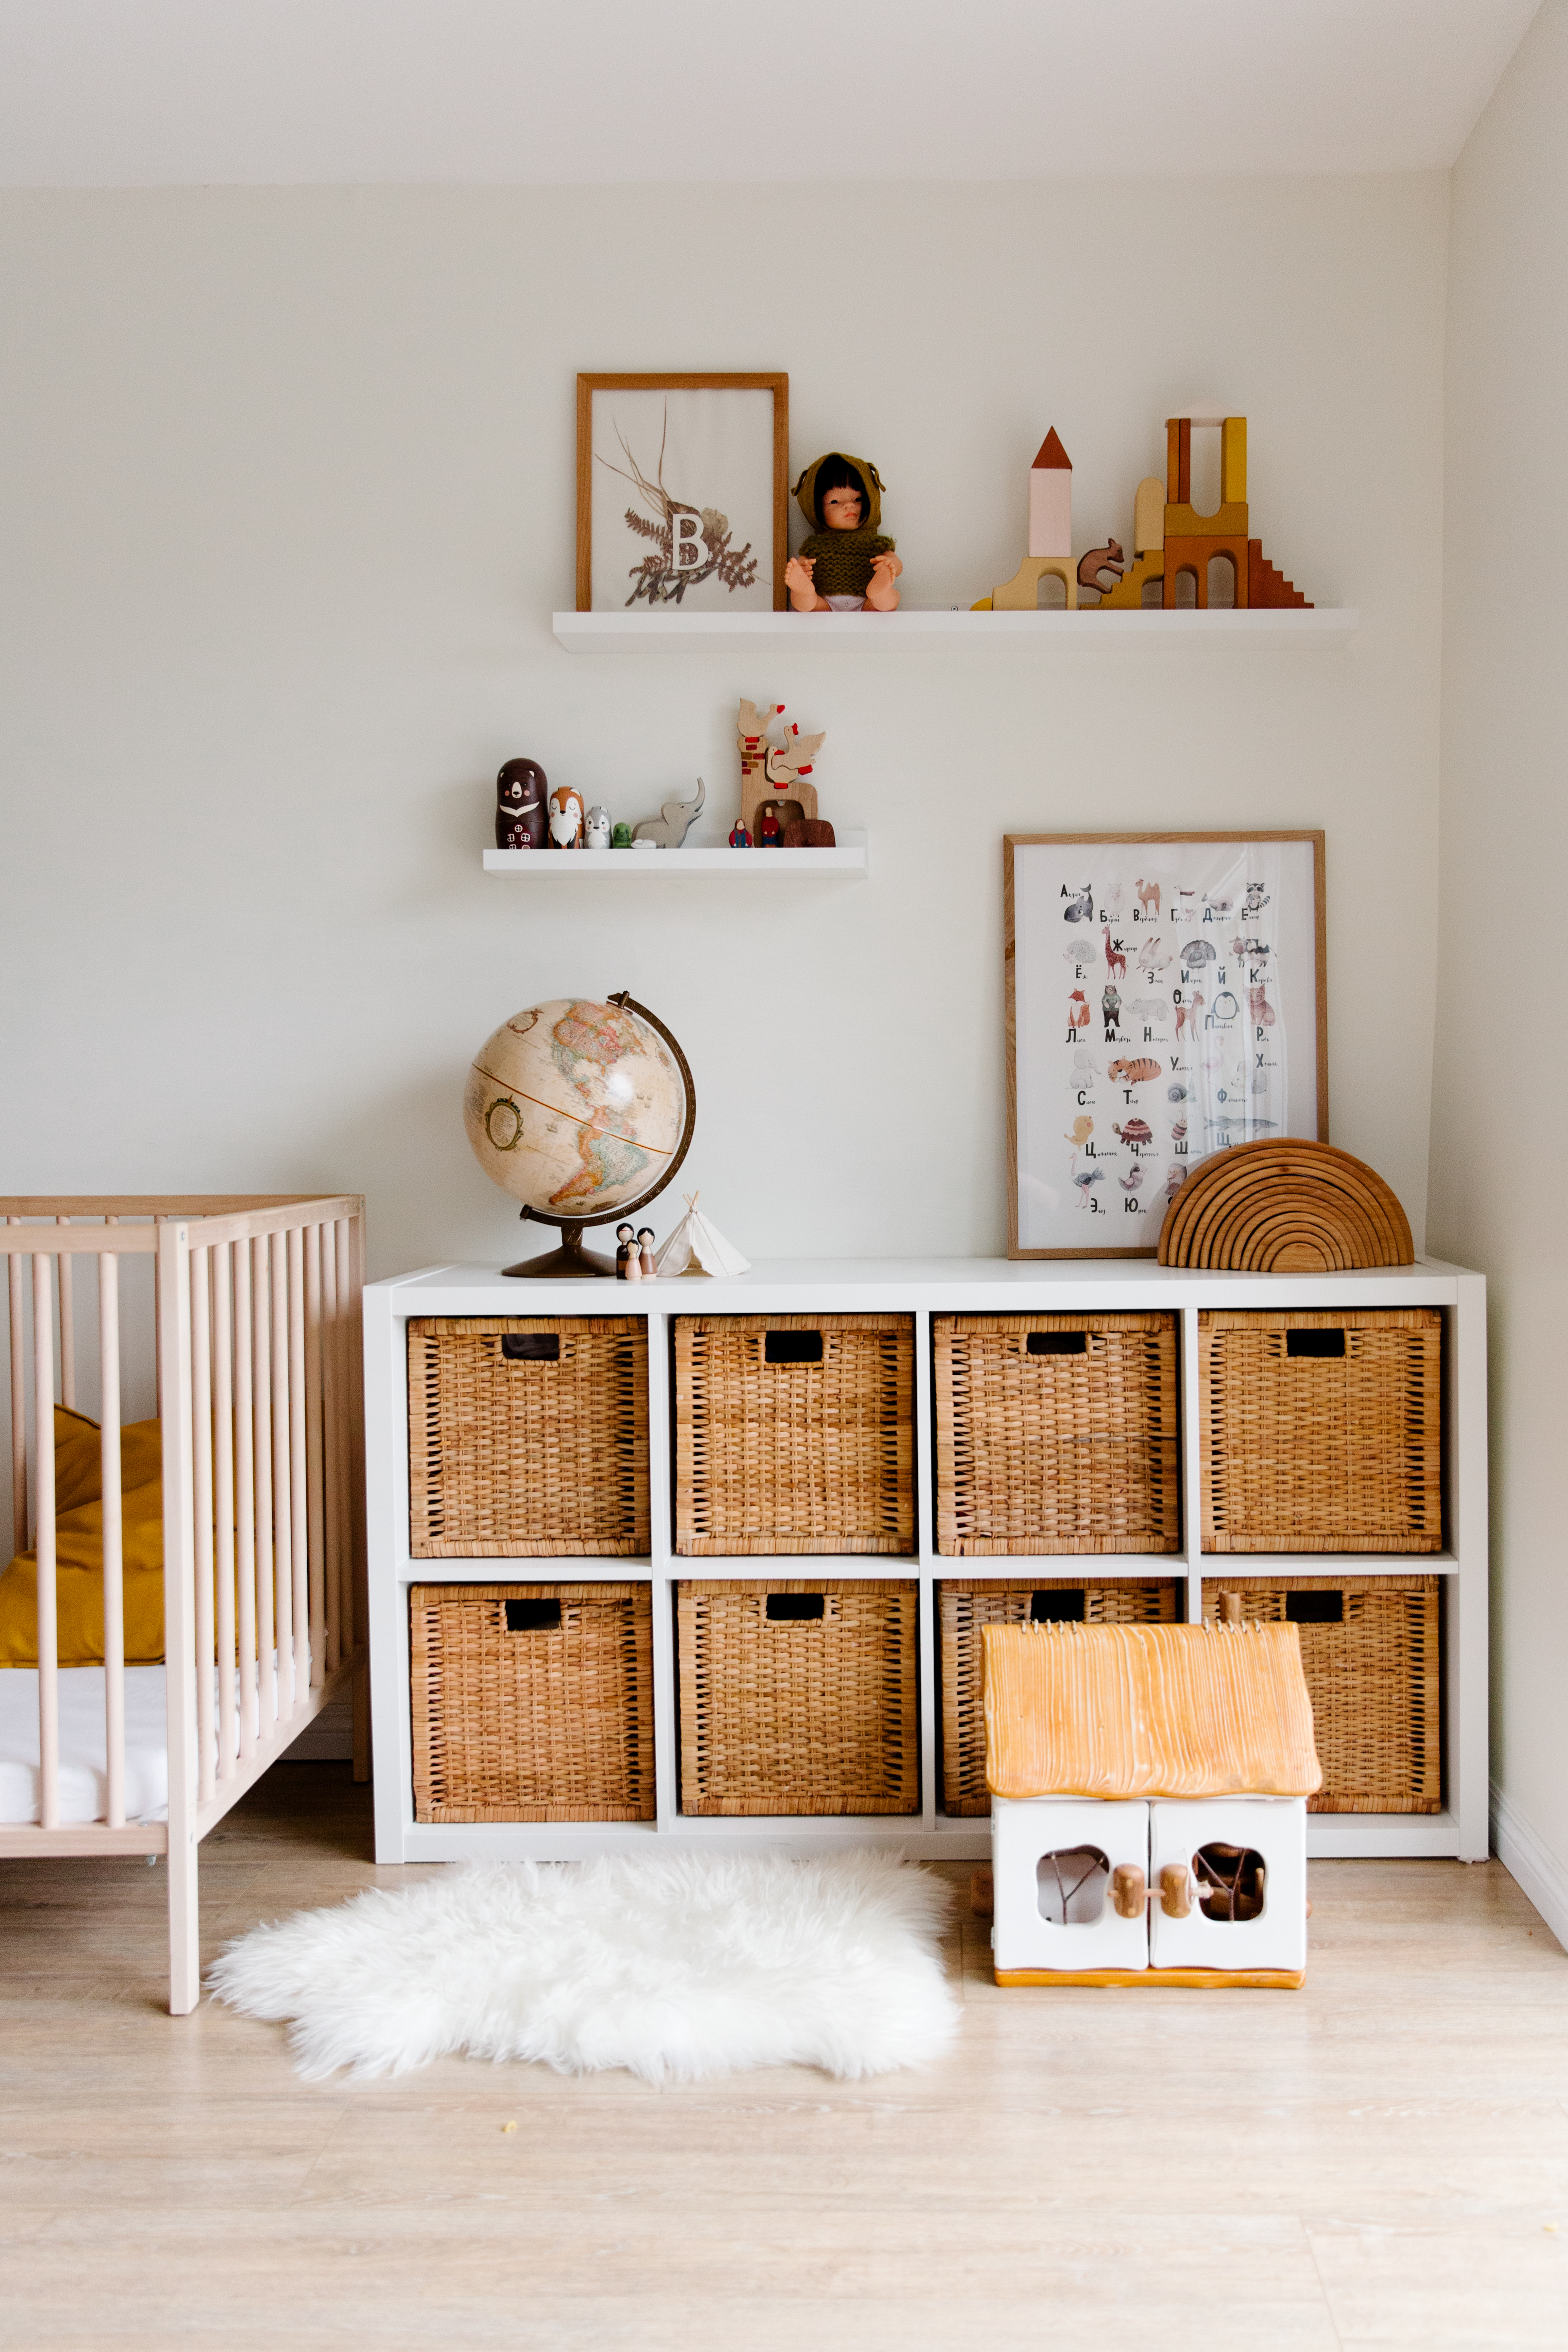 interior of children bedroom with wooden furniture and toys and globe placed on shelves in room